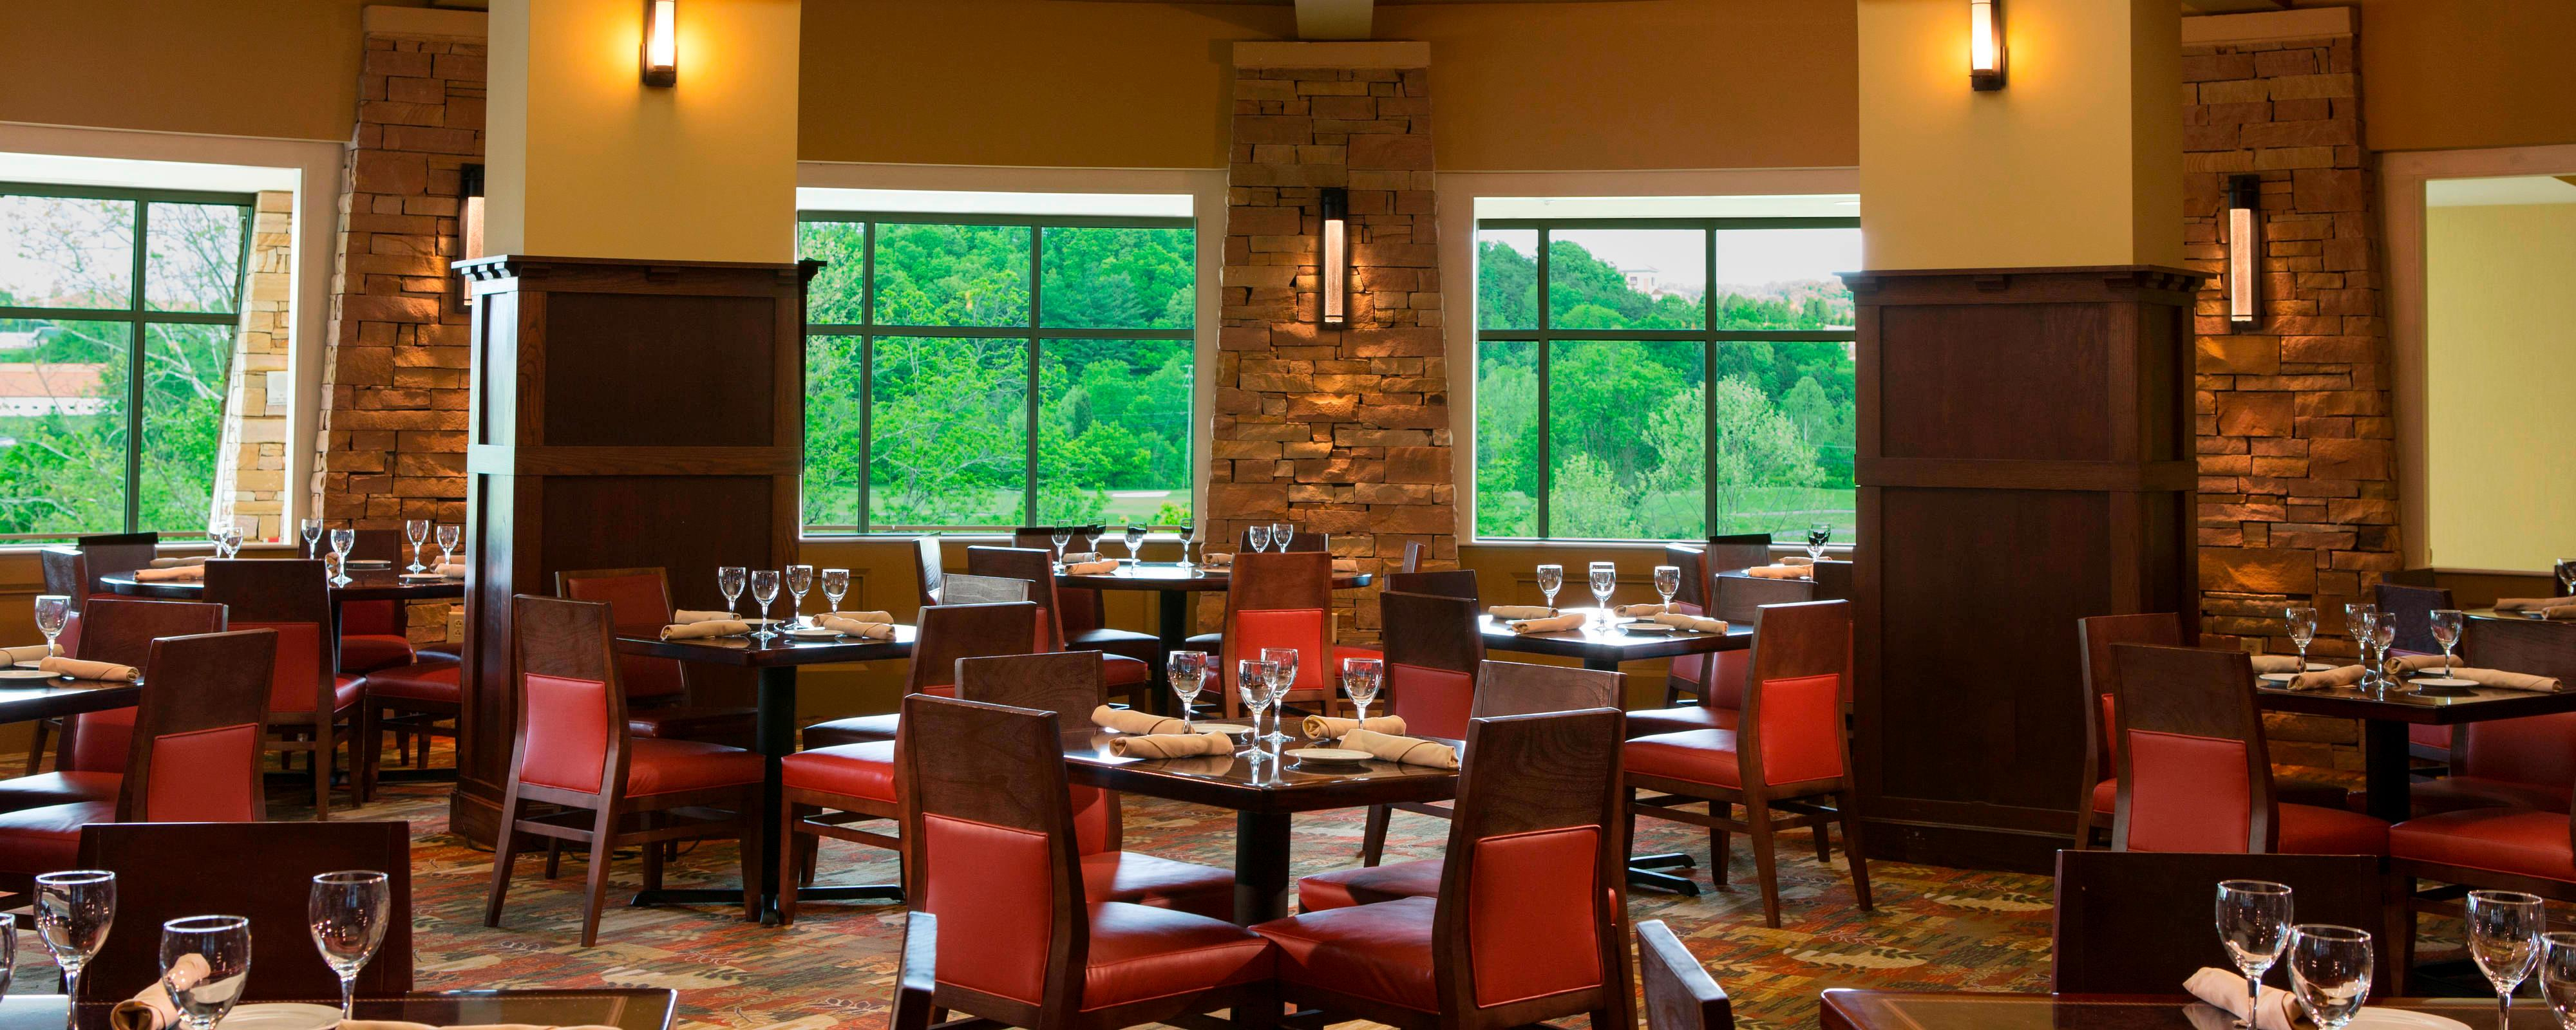 Kingsport Tn Restaurant Dining | Meadowview Conference Resort With Regard To April 17 At Kingsport Medowview Convention Center